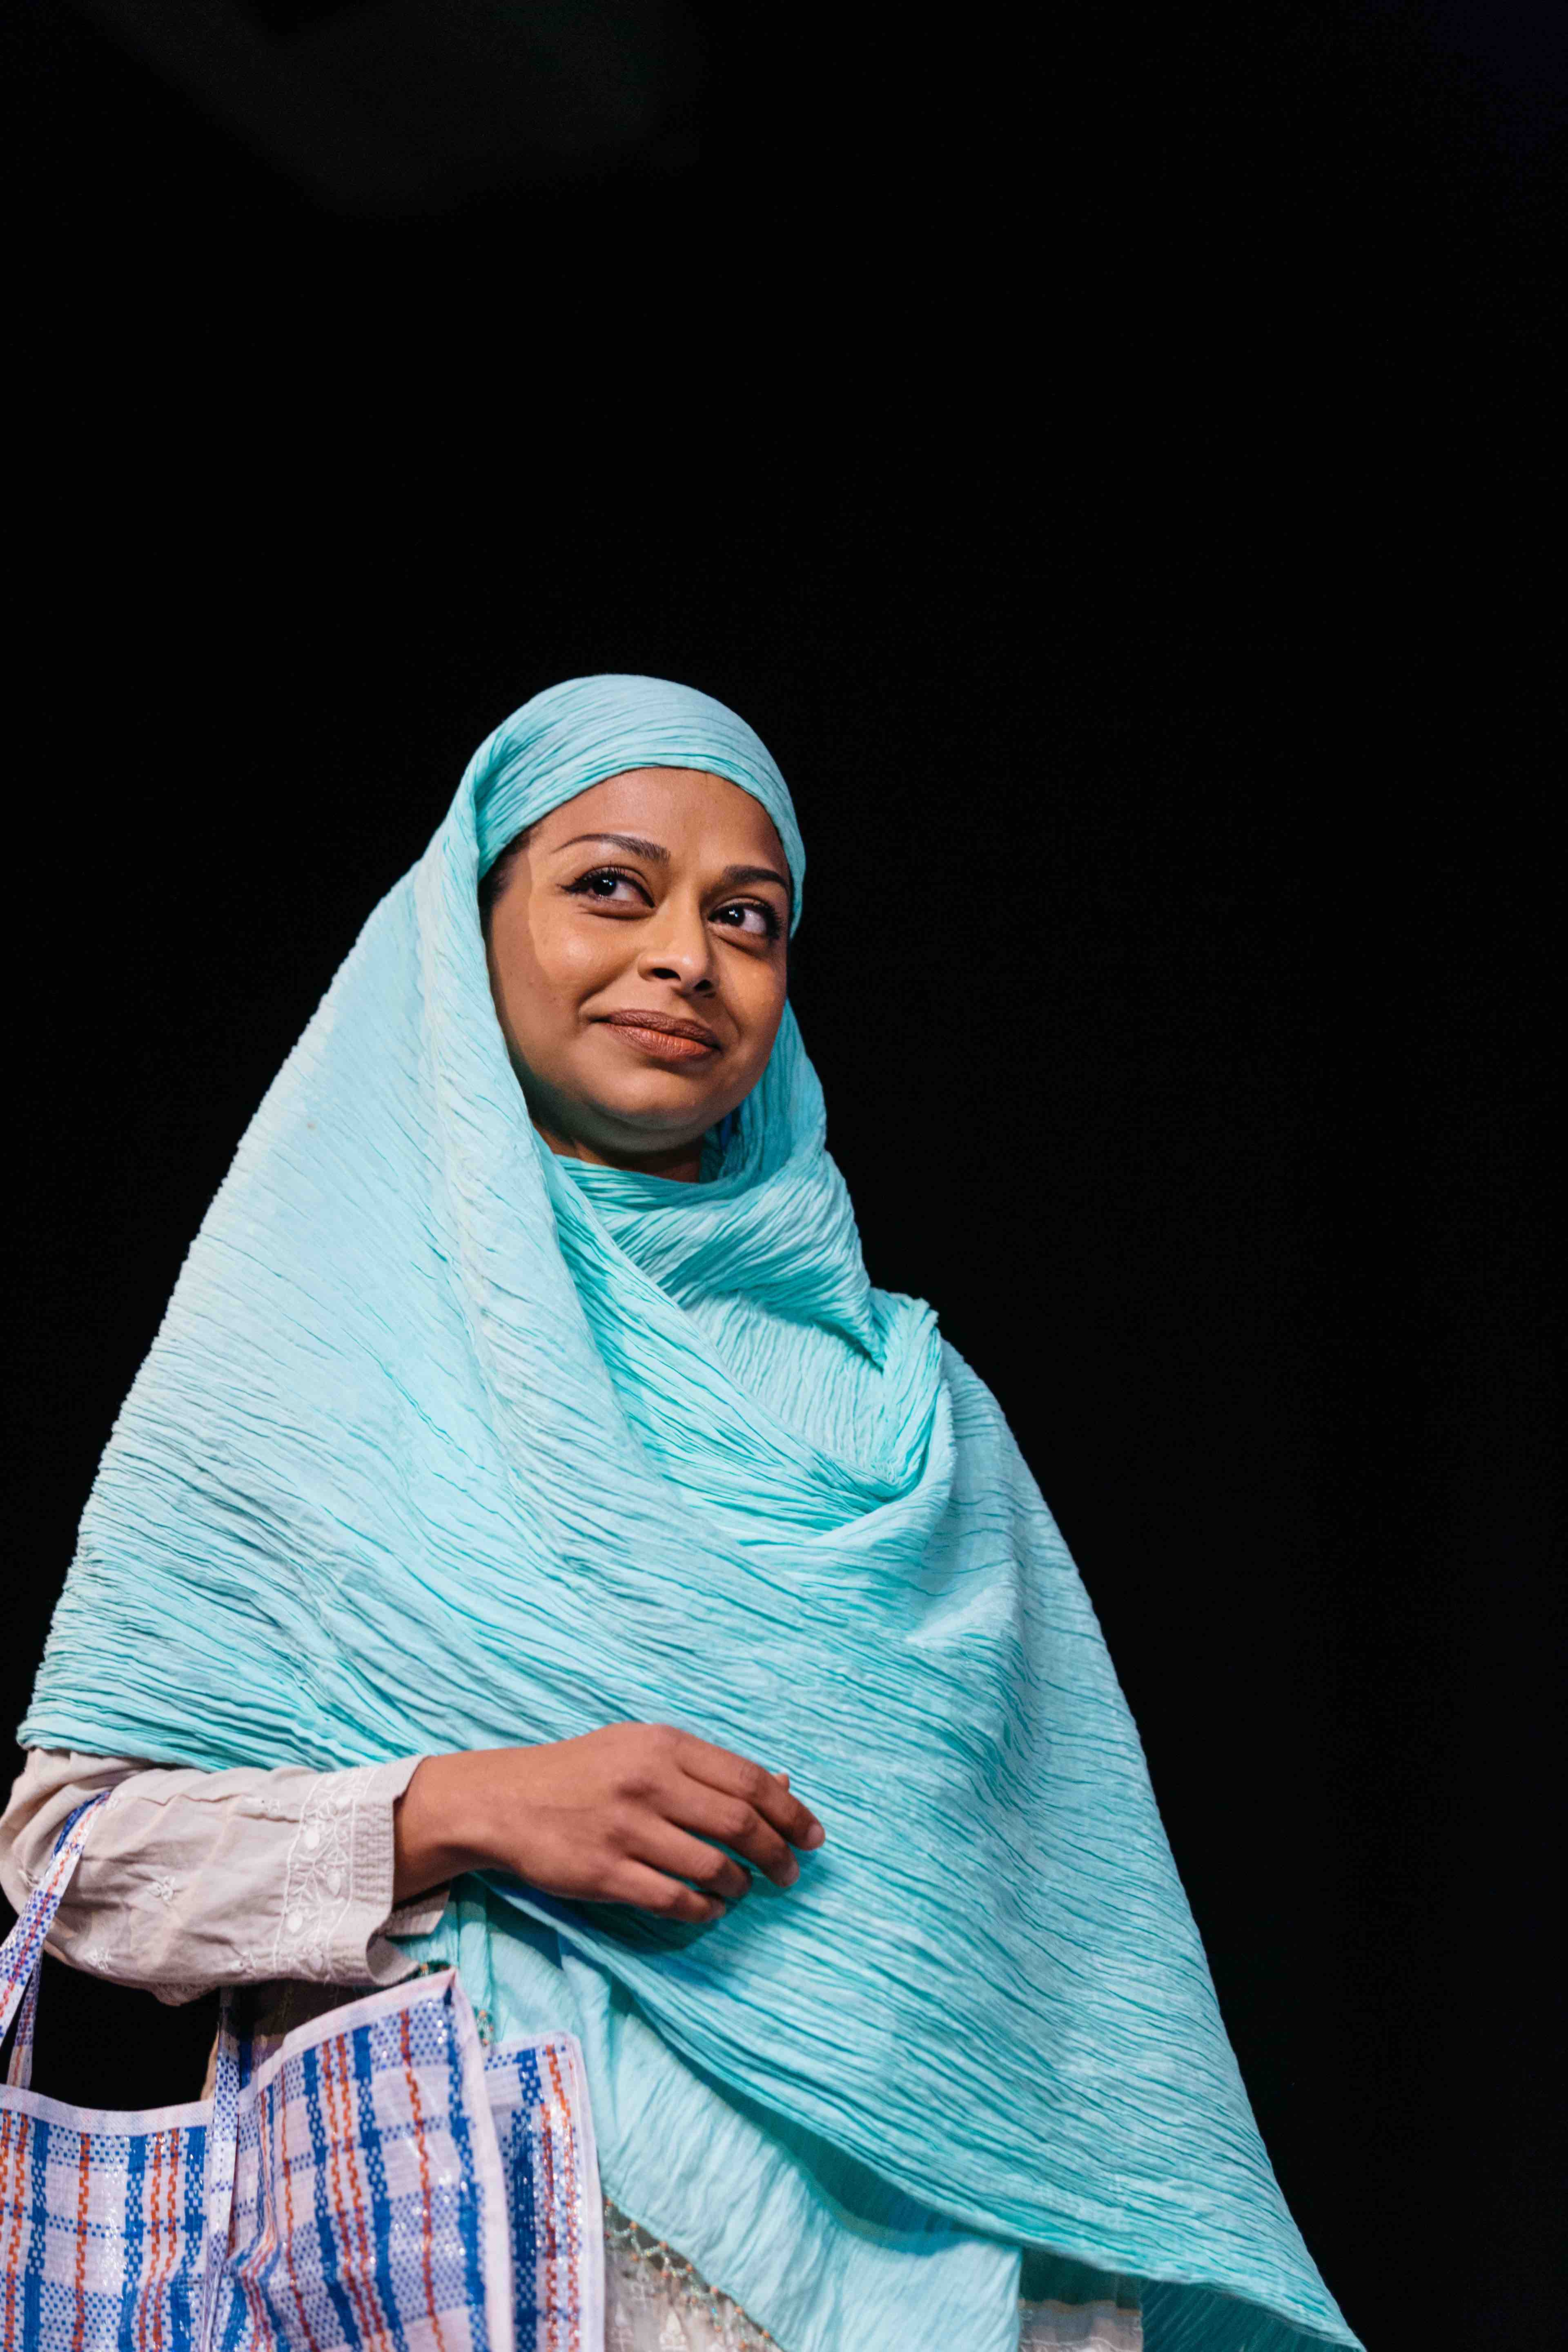 Ayesha Darker in Hijabi Monologues London directed by Milli Bhatia-742 -®helenmurray